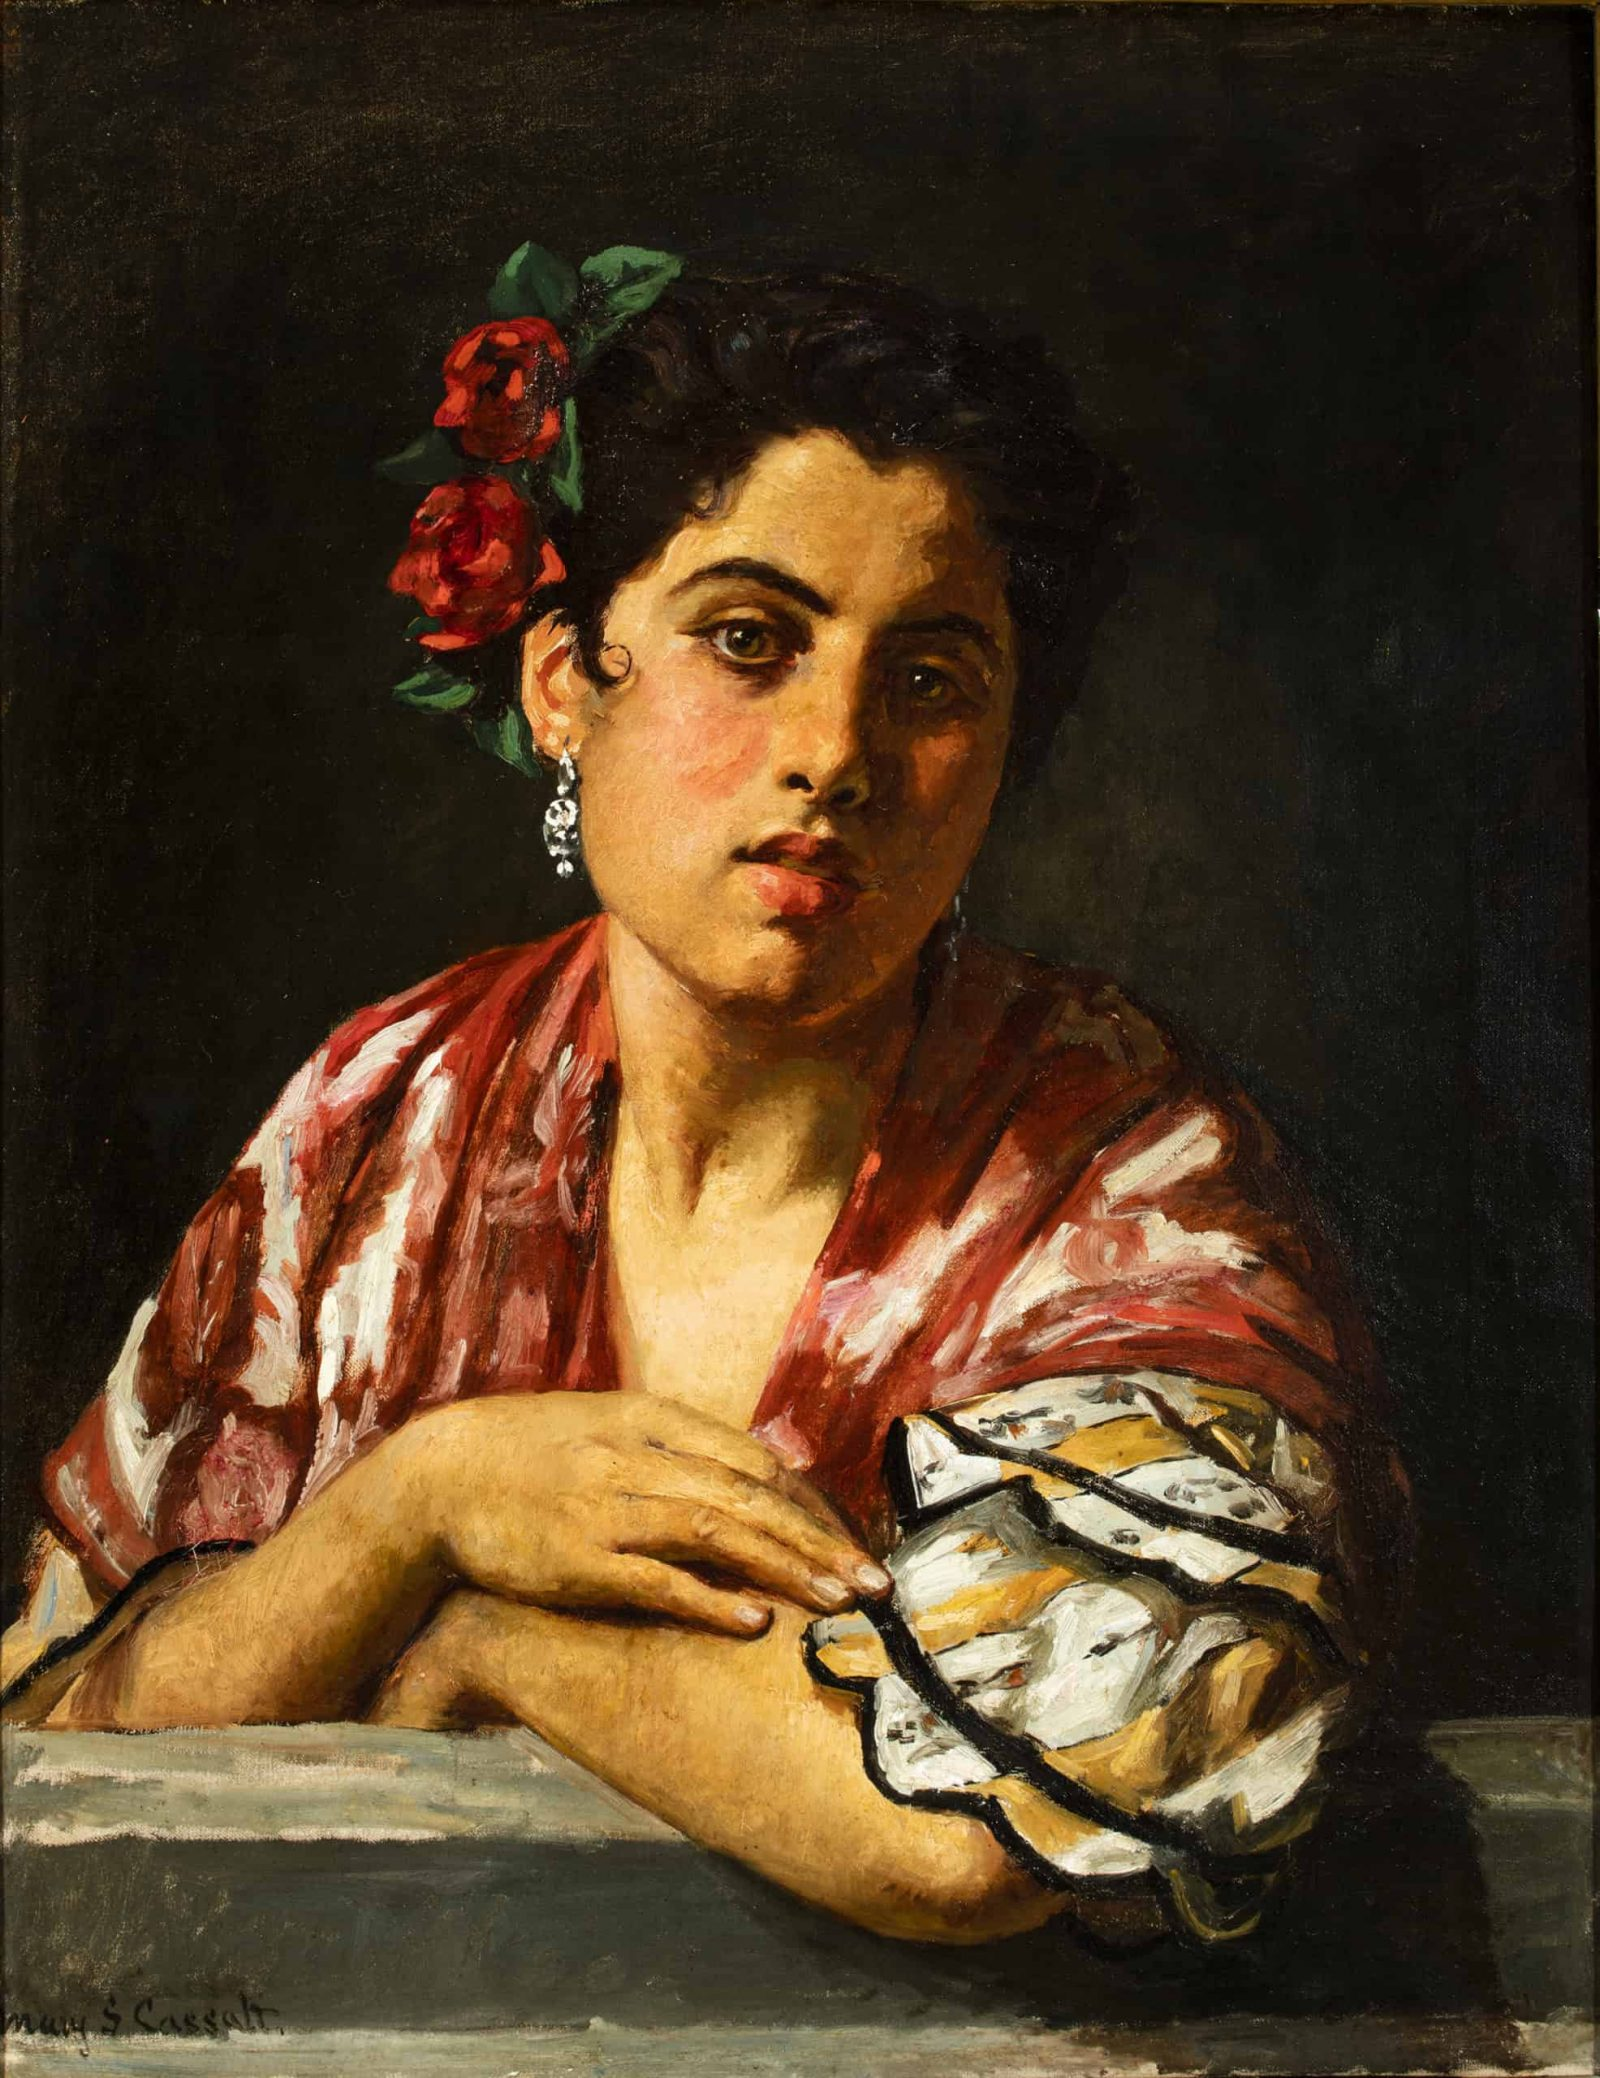 Mary Cassatt (American, 1844-1926), Spanish Girl Leaning on a Window Sill, ca. 1872. Oil on canvas. Manuel Piñanes García-Olías, Madrid.